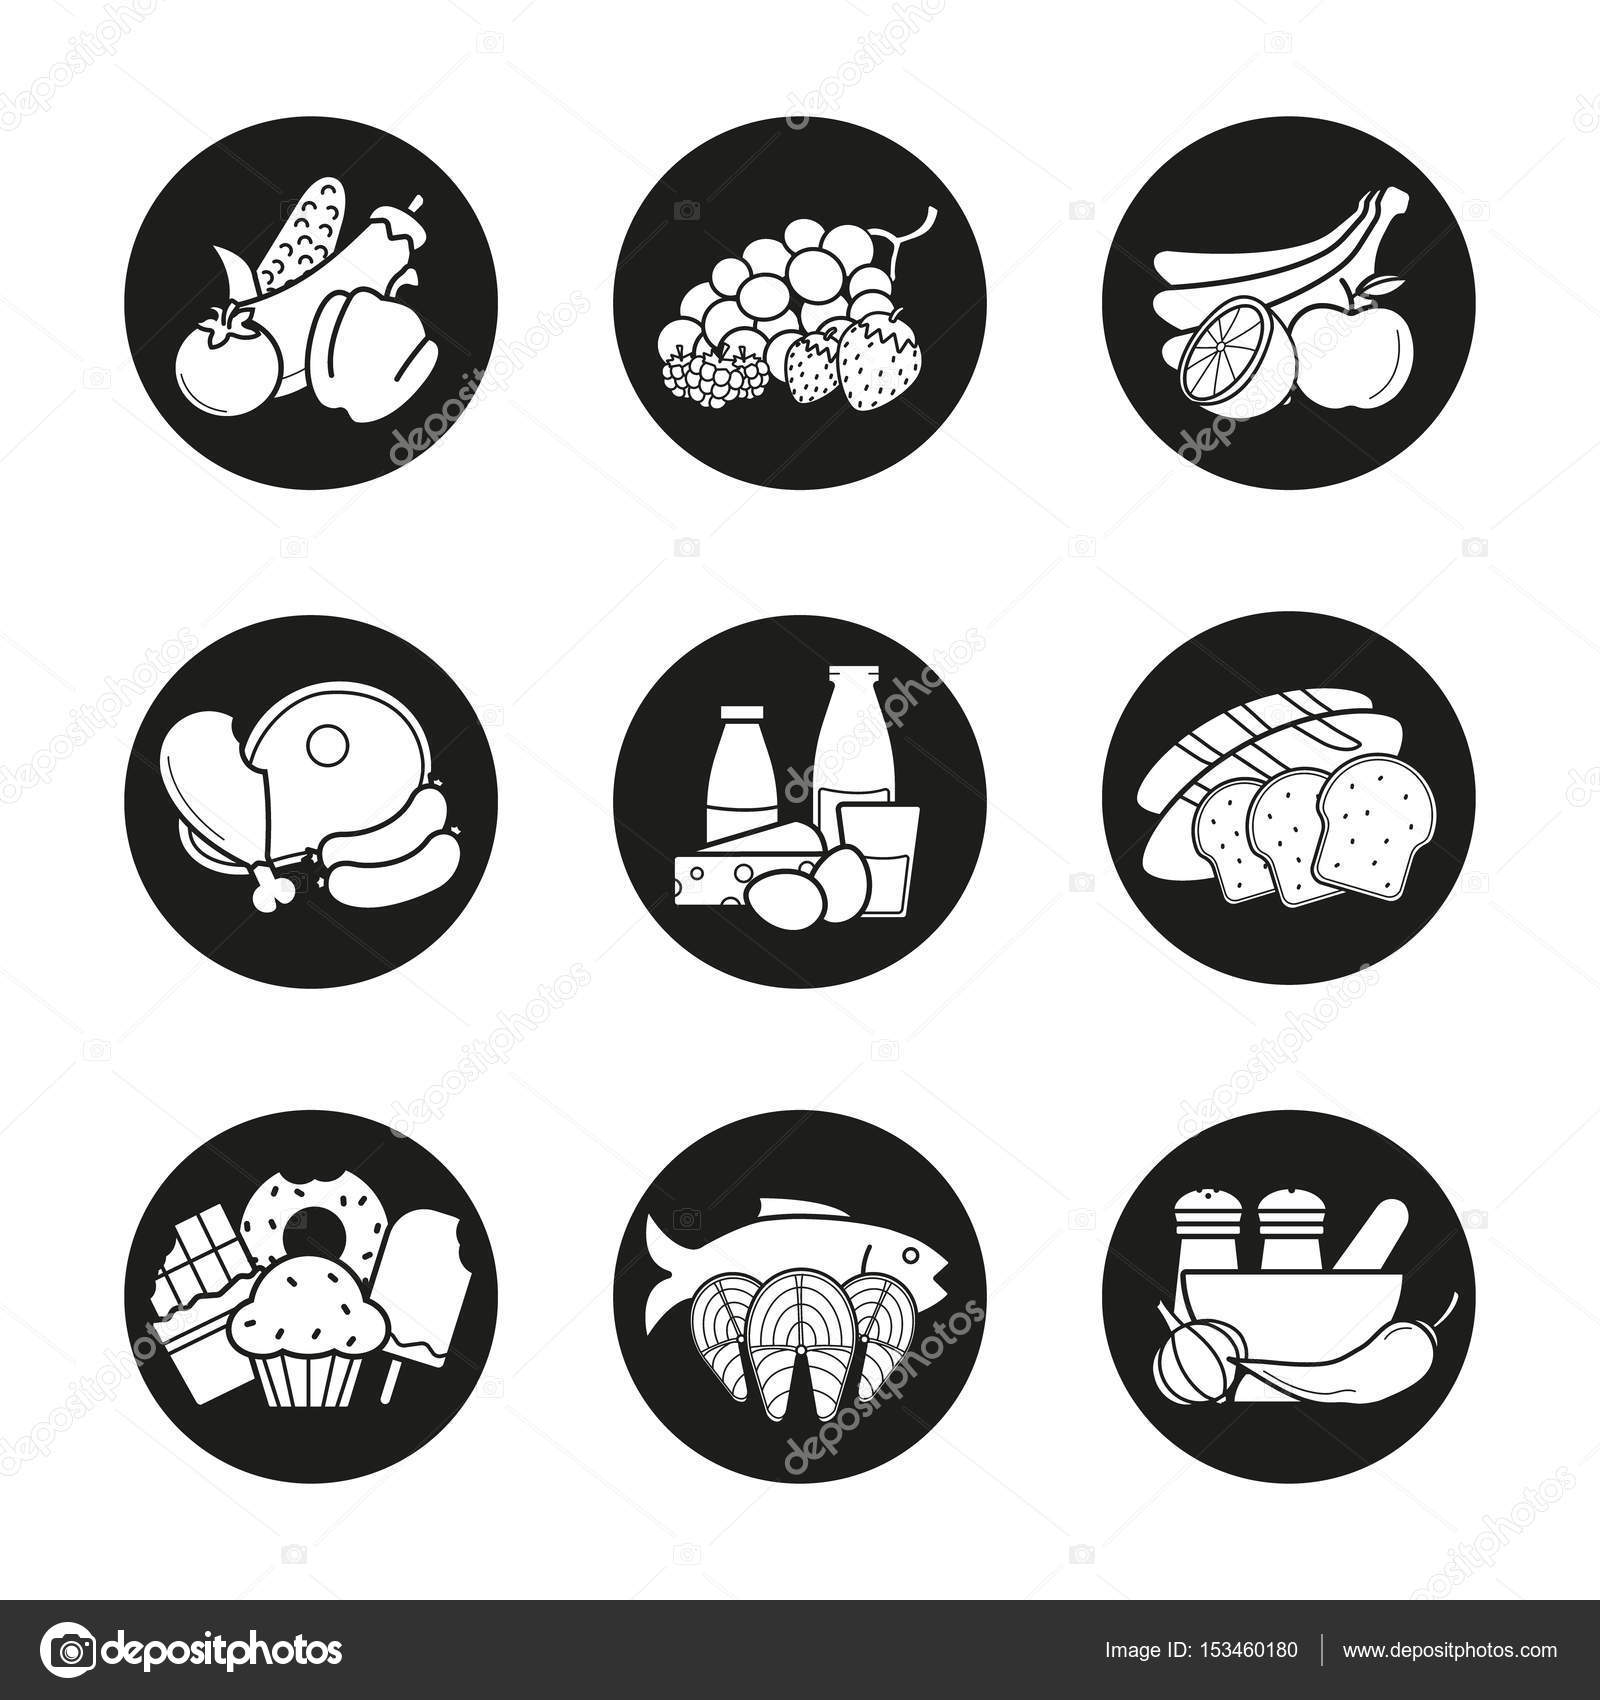 grocery store product categories icons stock vector bsd 153460180